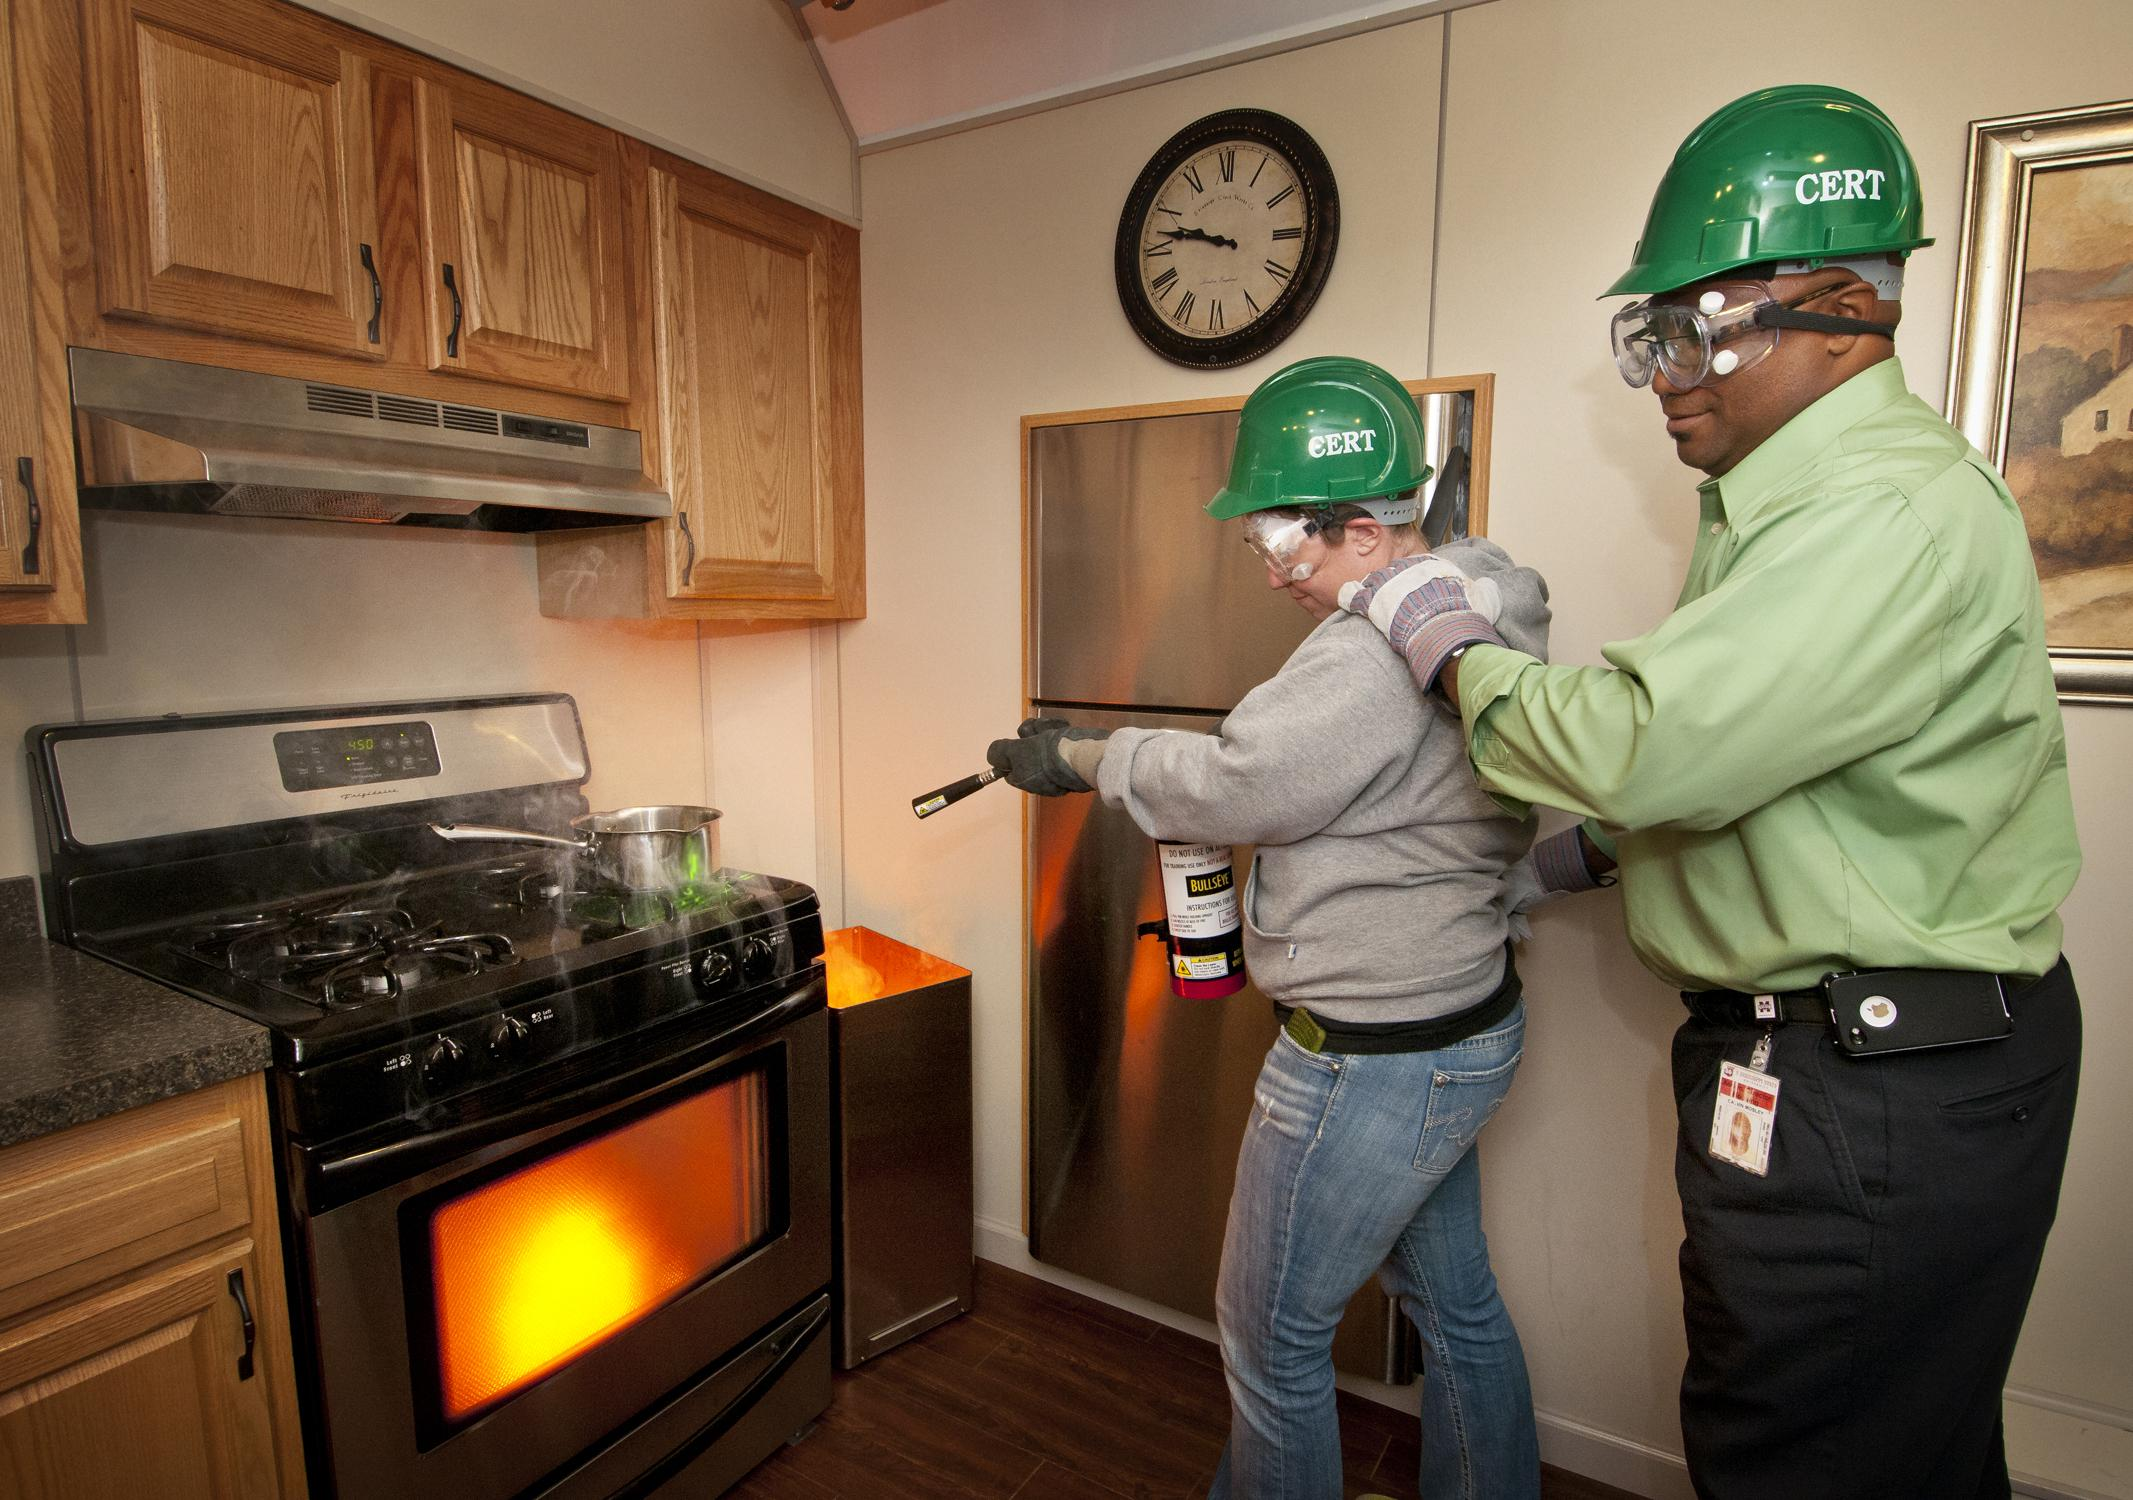 Donna Adams (left), area coordinator for Mississippi State University's student housing, and Calvin Mosley, associate director of student housing, extinguish a simulated fire in a trailer specifically designed for teaching fire control skills. Adams and Mosley are part of a group of 28 faculty and students who participated in MSU's Campus Community Emergency Response Team training. The CERT program educates people about disaster preparedness for hazards that may impact their area. The Nov. 8 training was ad